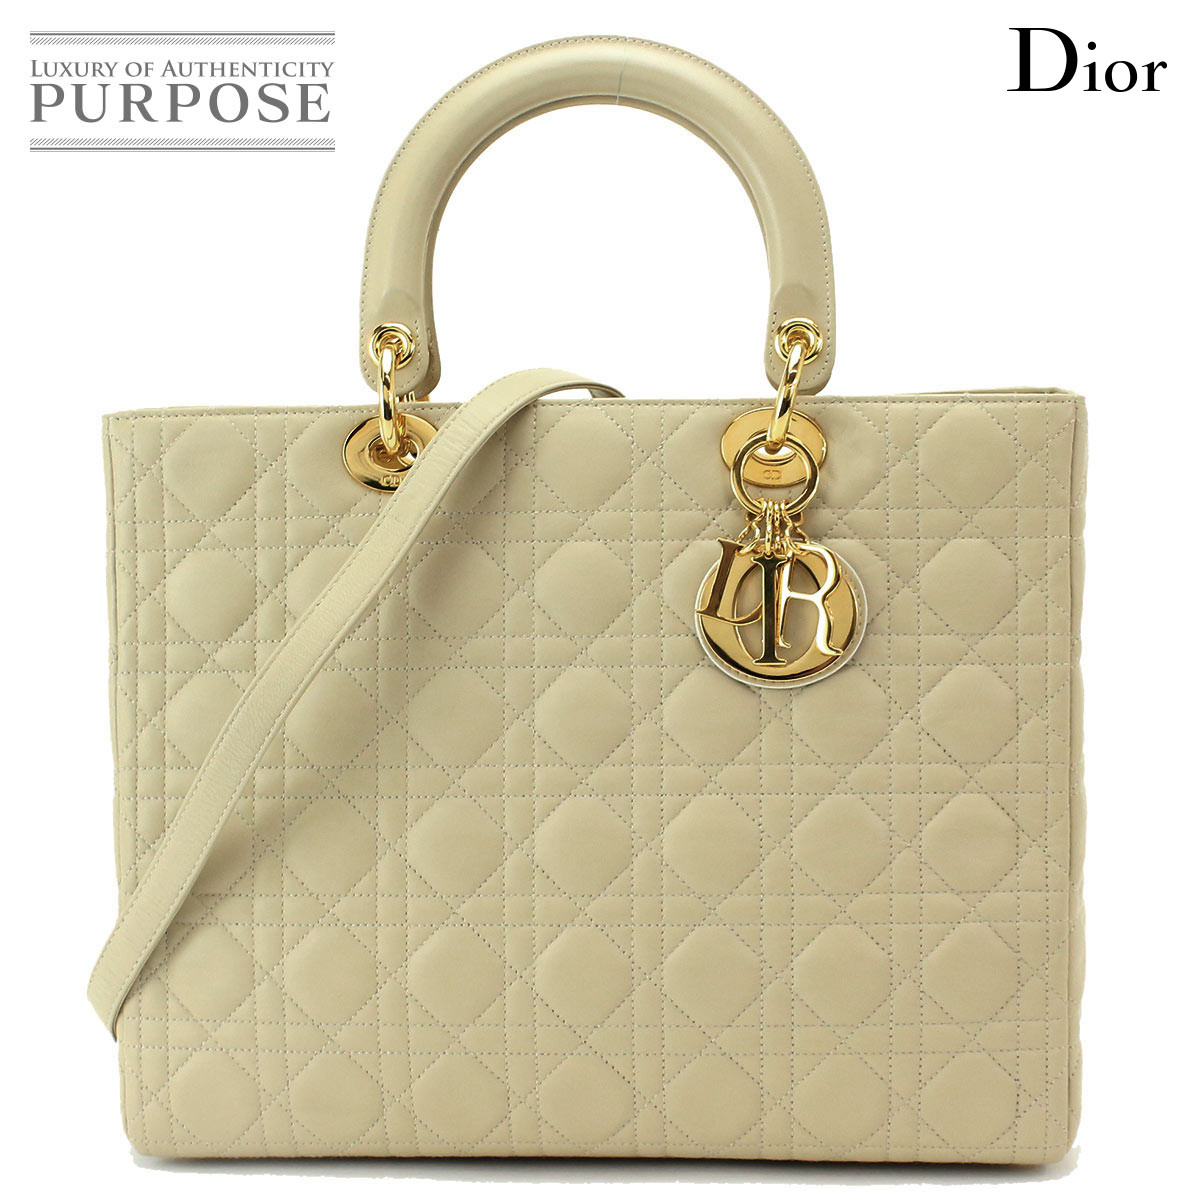 5267a4ade [unused display] Christian Dior Christian Dior lady Dior 2way hand shoulder  bag leather beige [used] brand